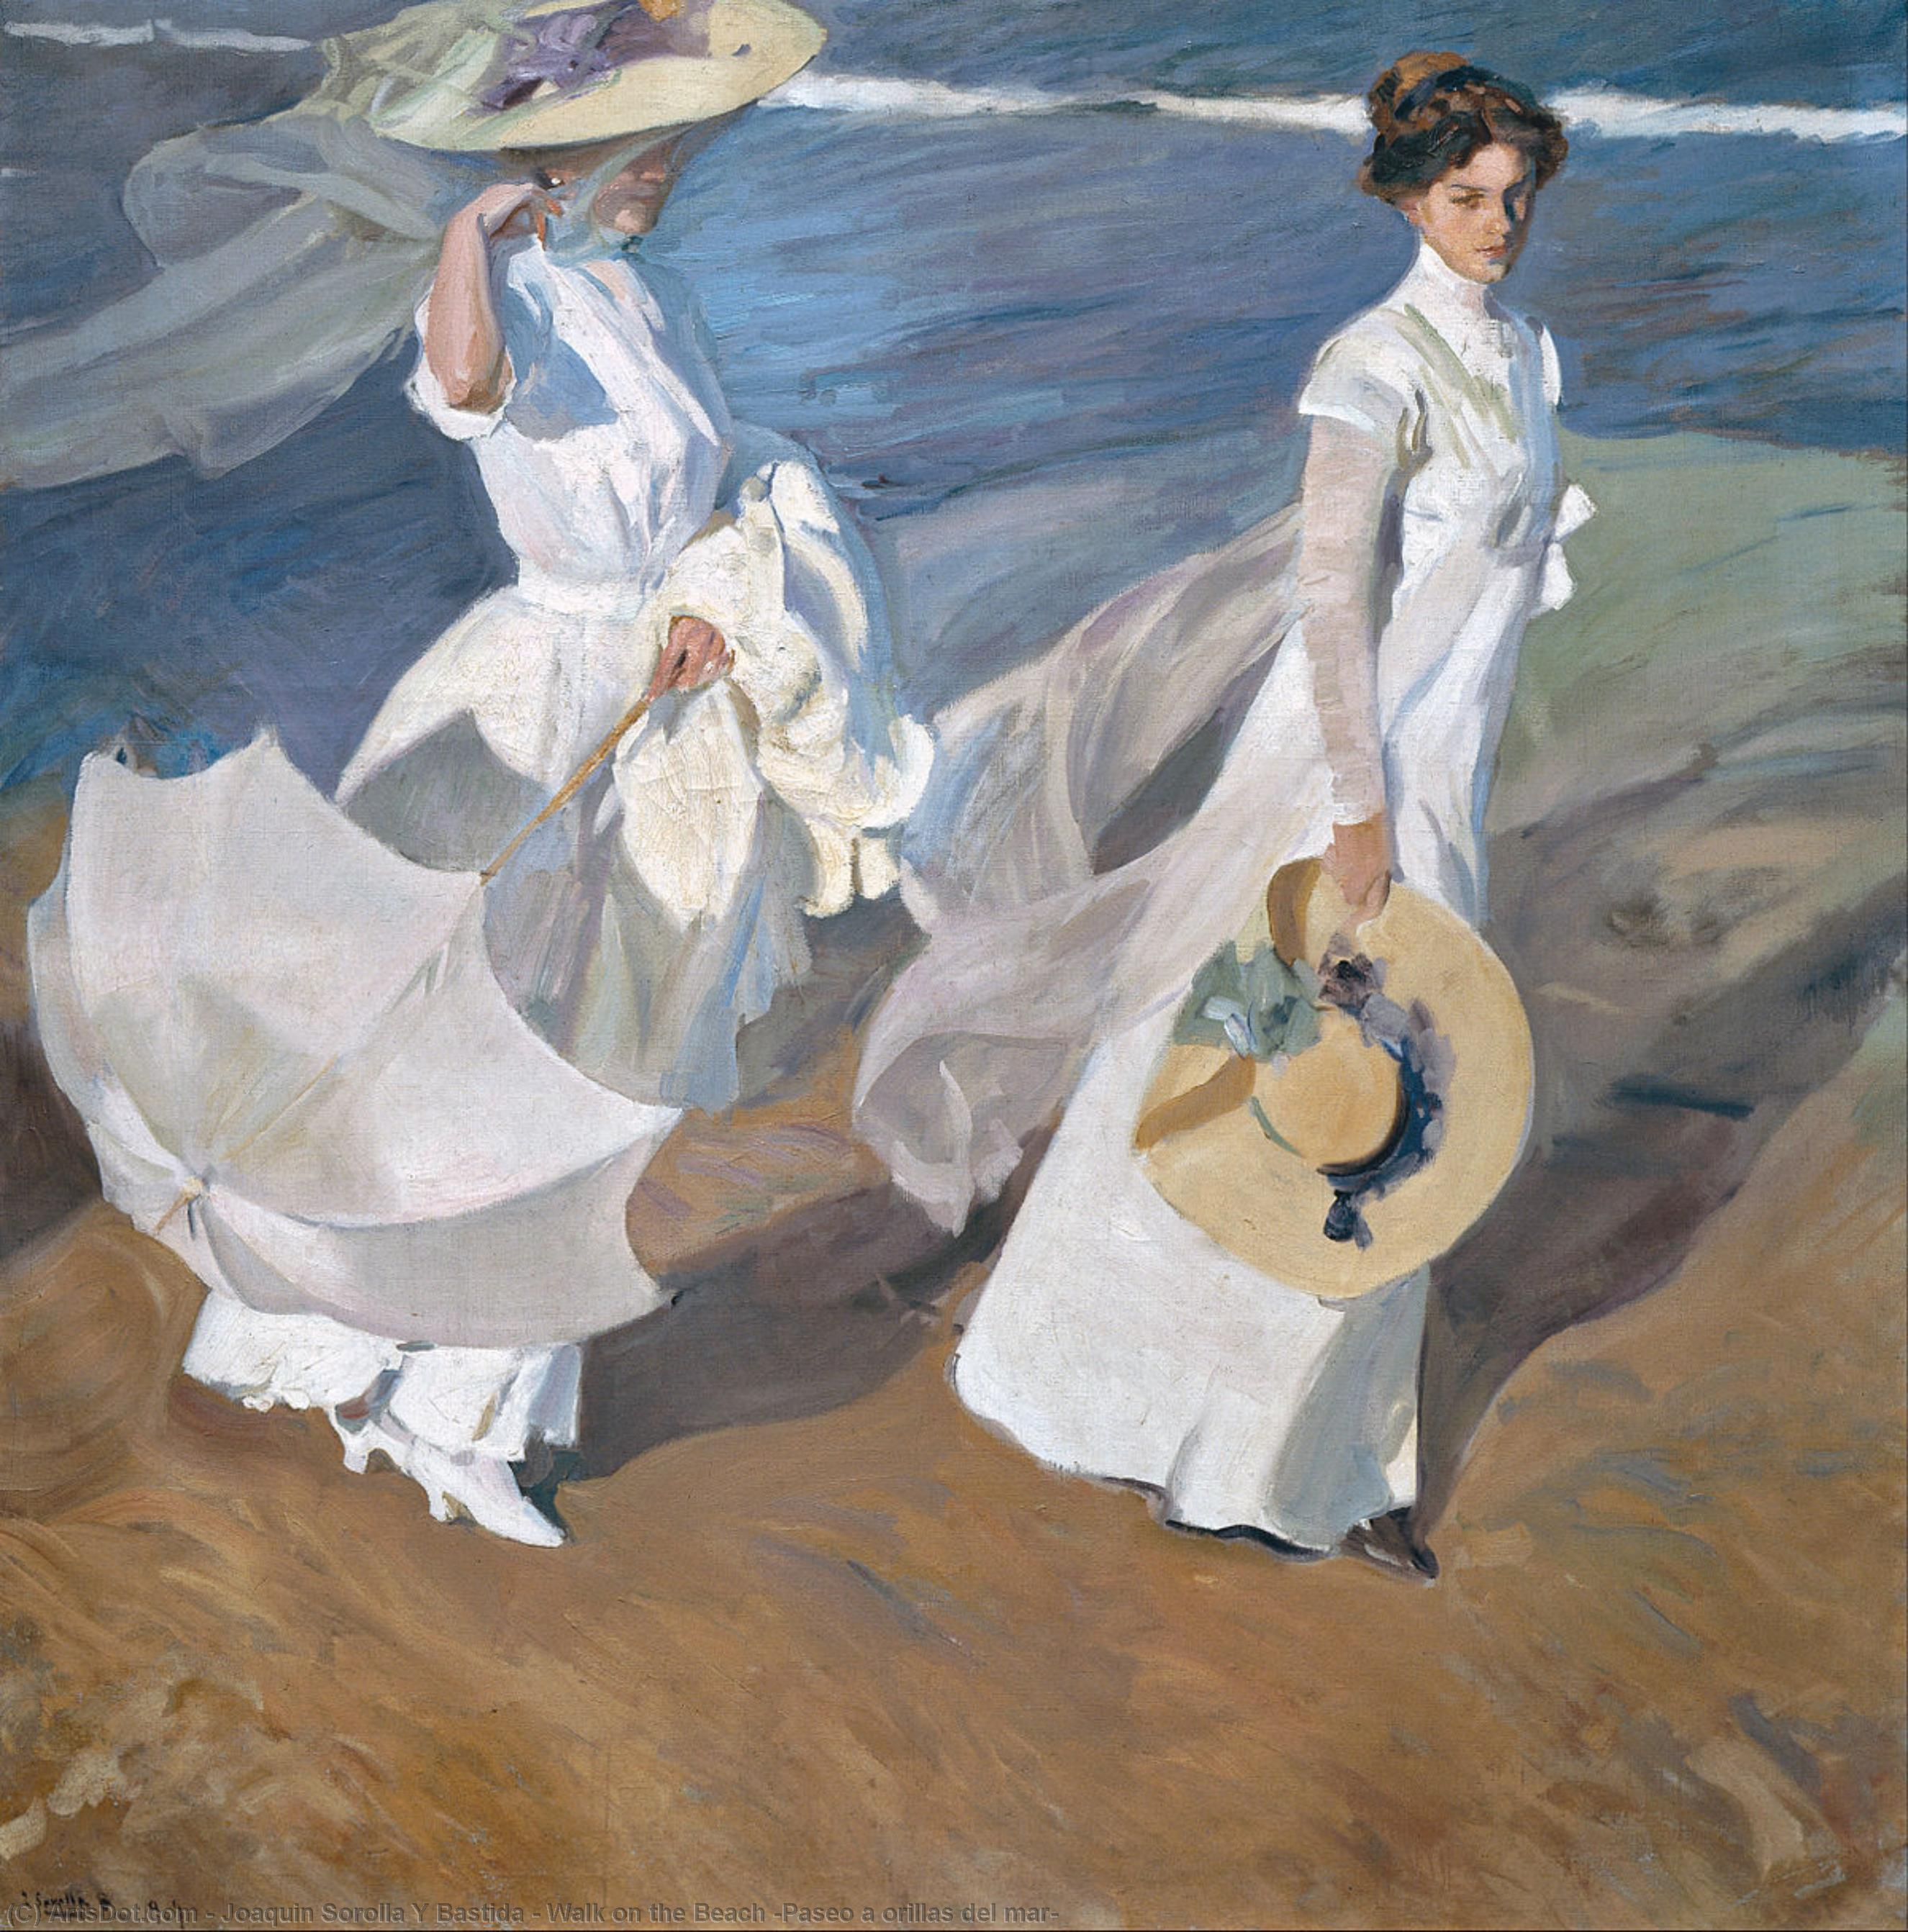 Wikioo.org - The Encyclopedia of Fine Arts - Painting, Artwork by Joaquin Sorolla Y Bastida - Walk on the Beach (Paseo a orillas del mar)